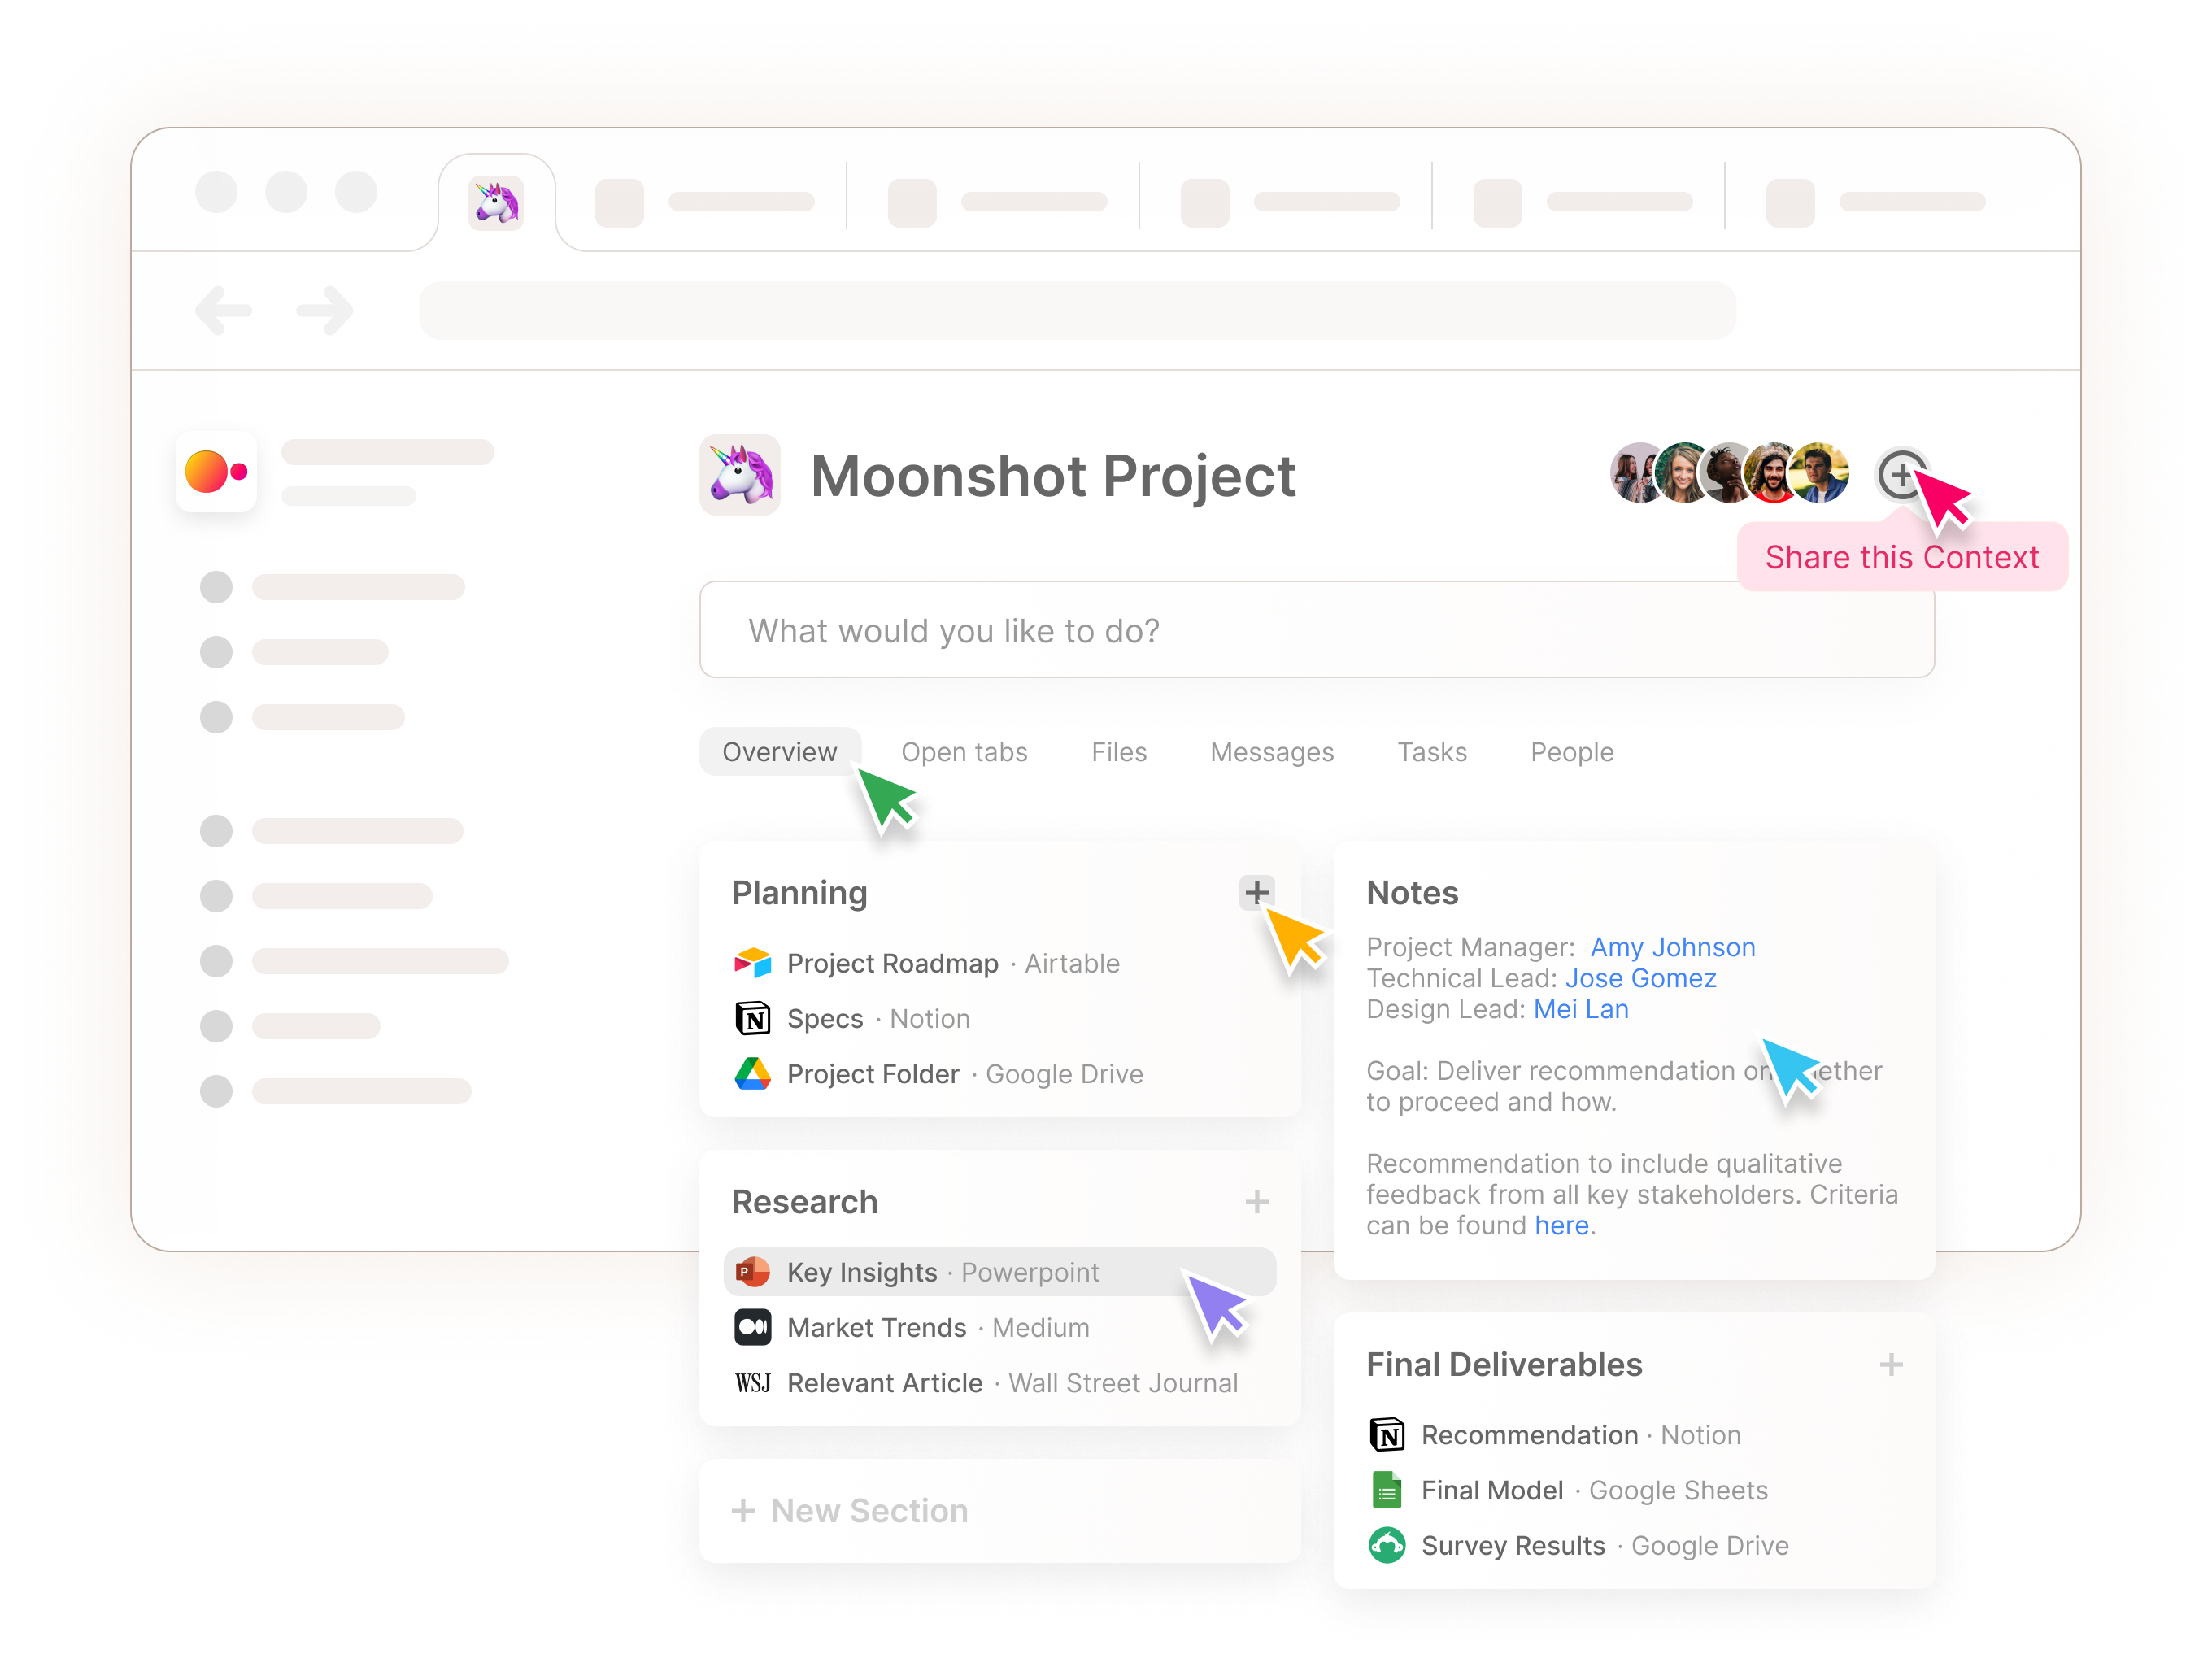 A mock up showing shared resources for a given Context and multiple mouse pointers highlighting collaborative features.